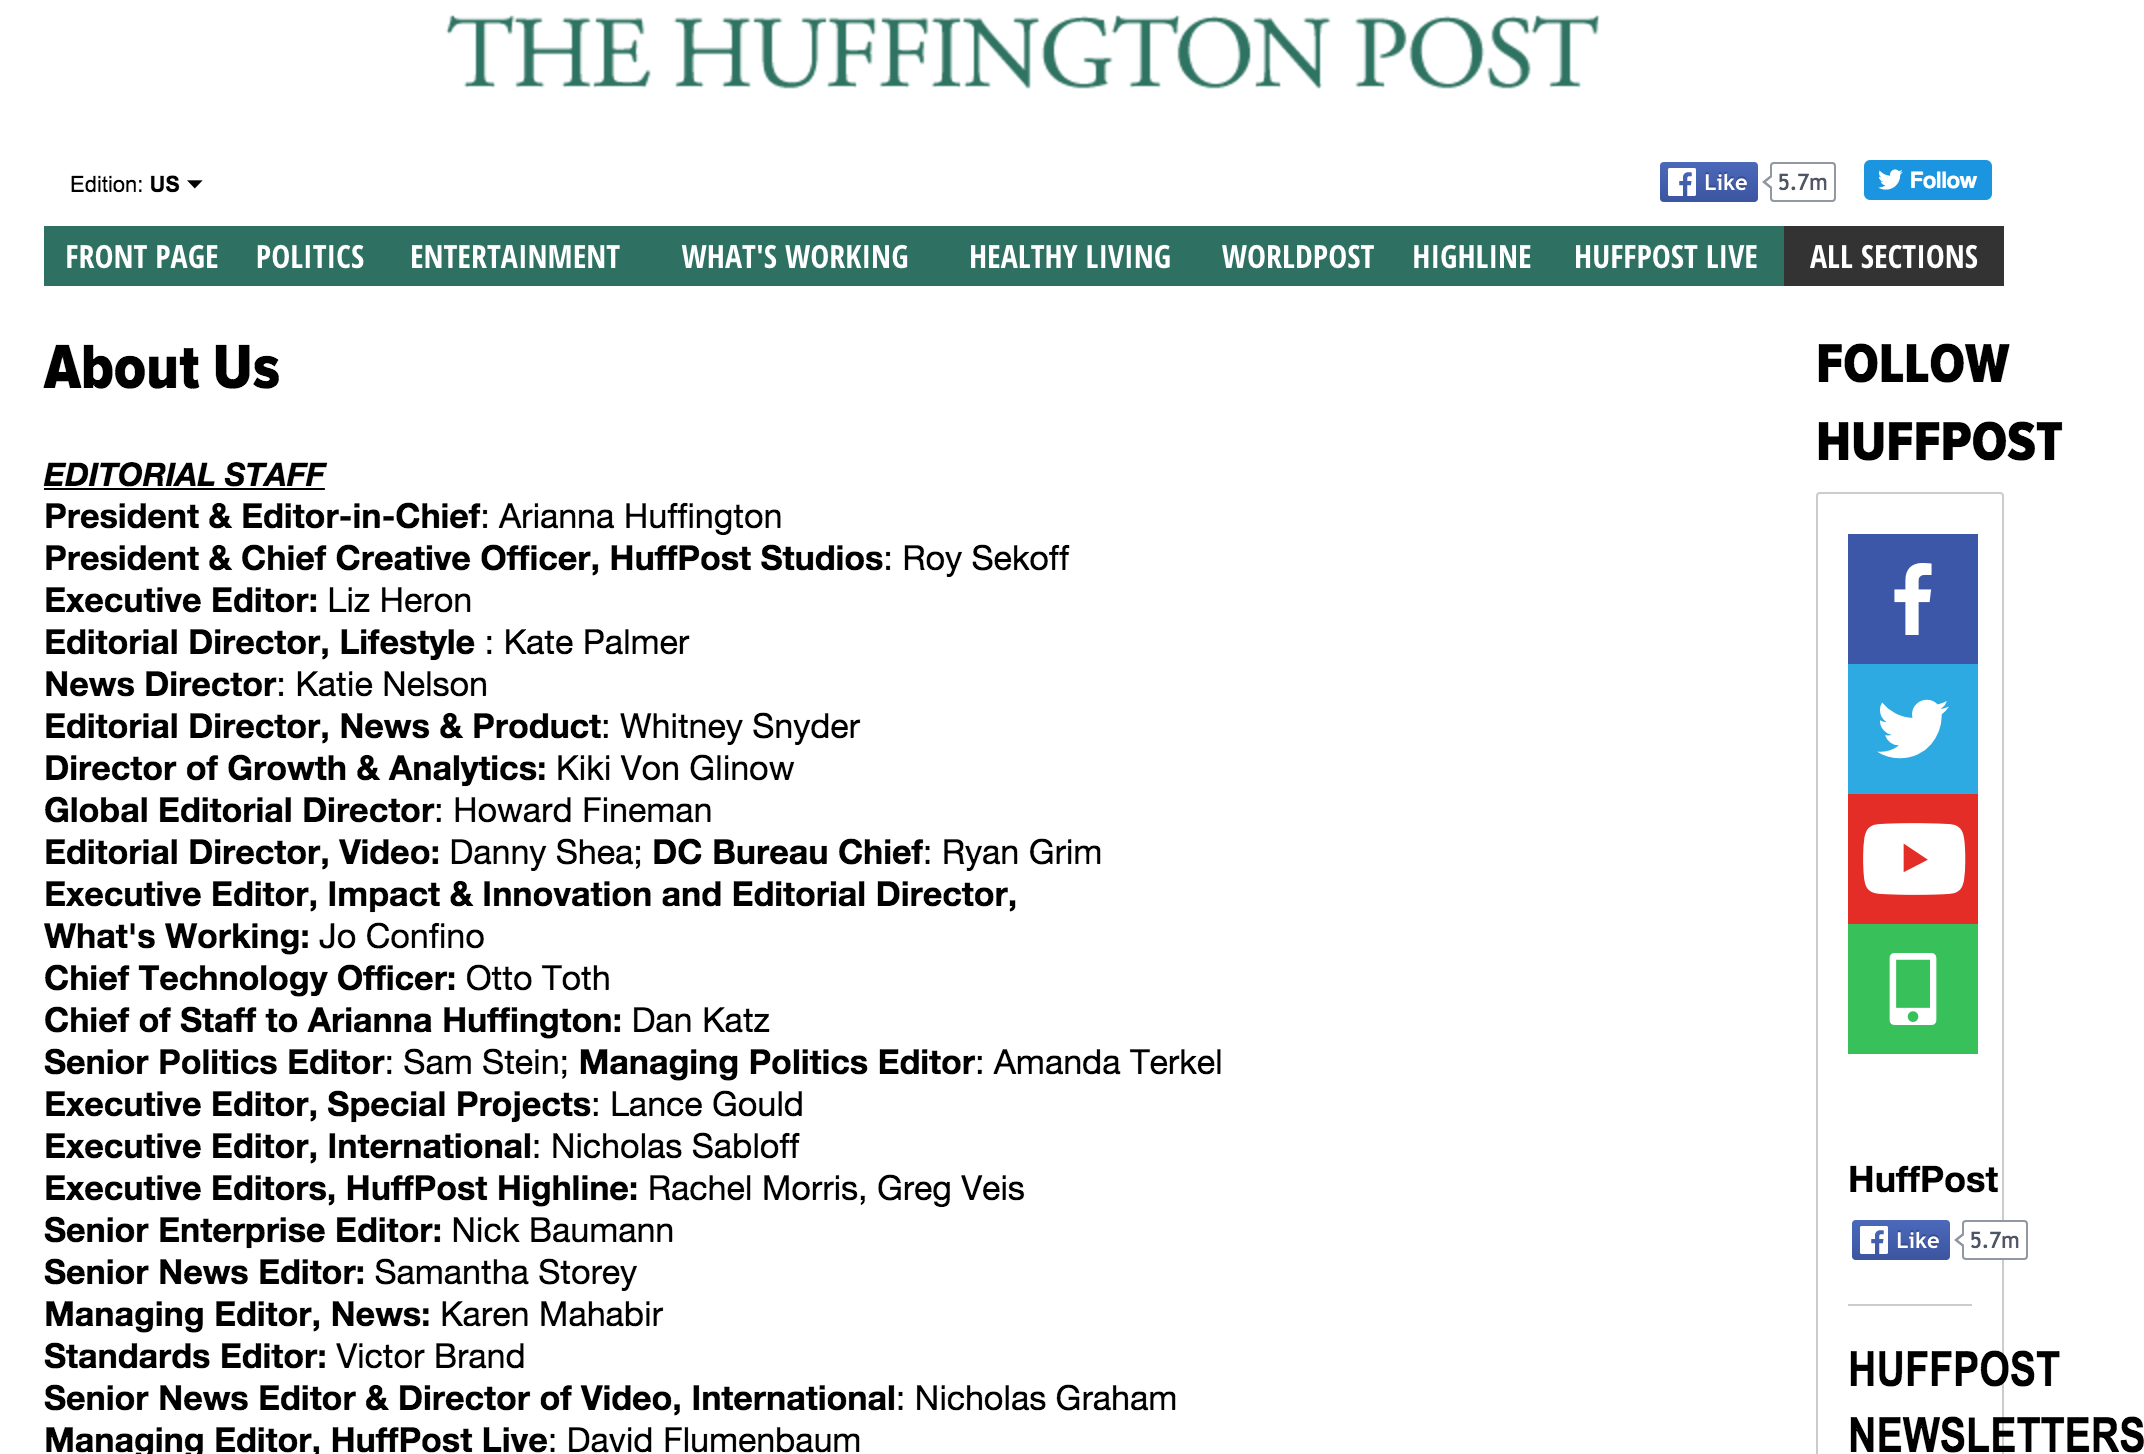 Screenshot showing the editorial stuff of the Huffington Post